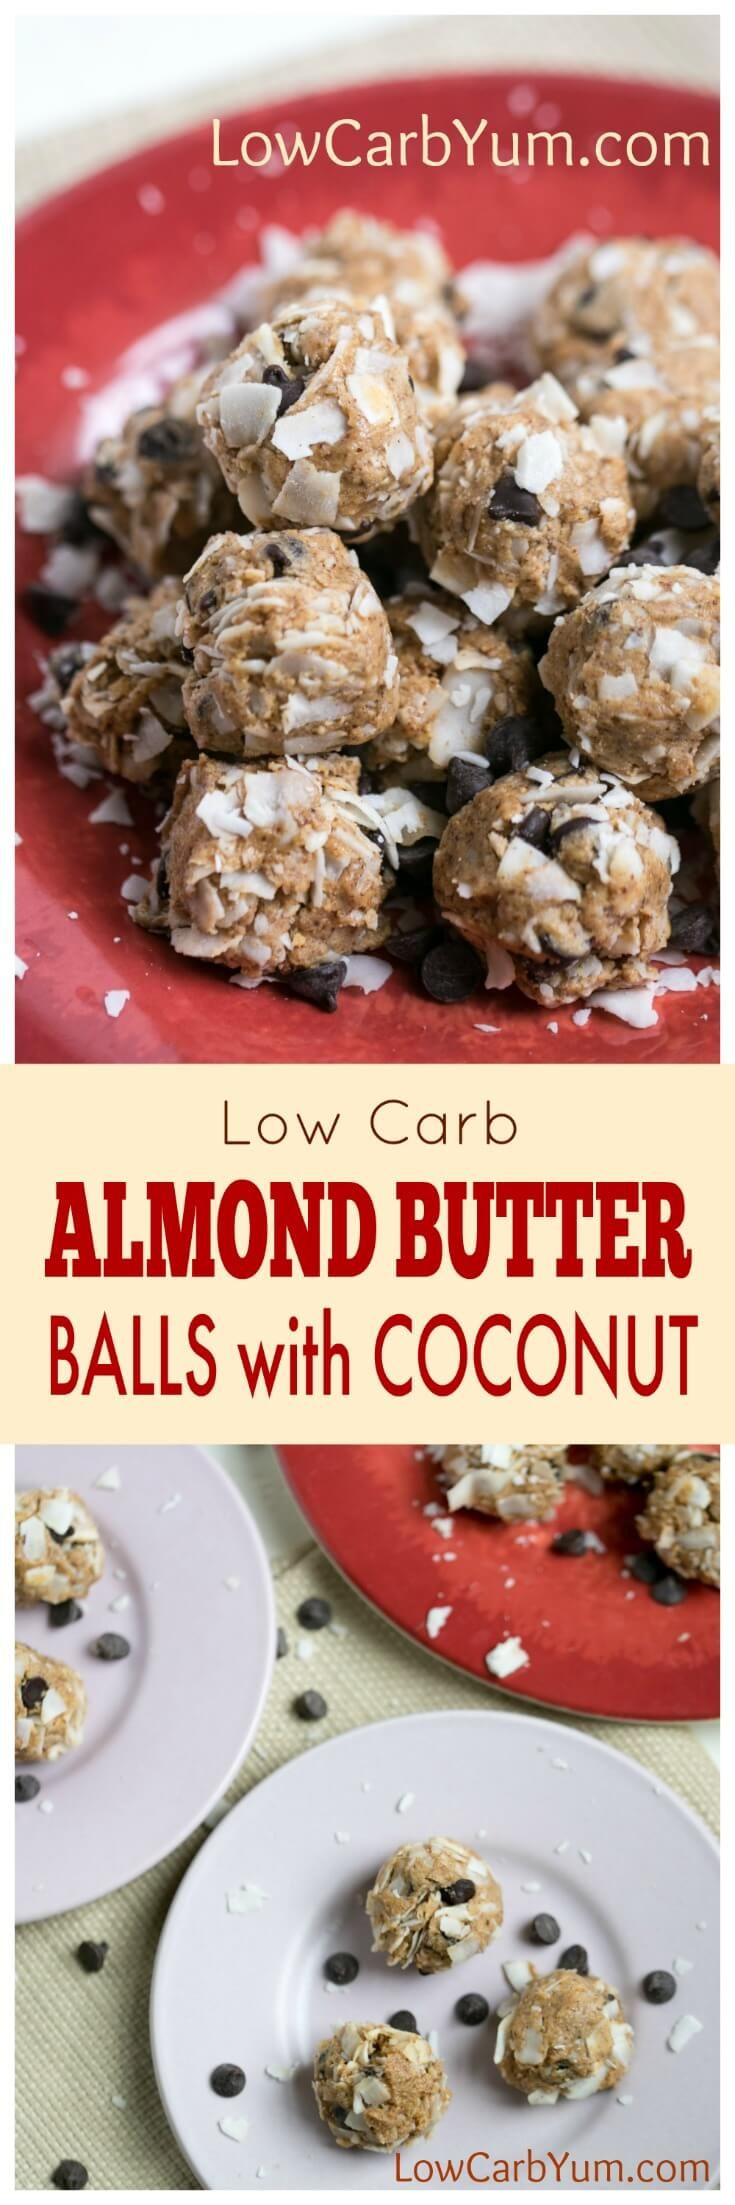 A no bake almond butter balls recipe that's quick and easy to make. These little protein bites are a perfect snack to boost energy during the day. | LowCarbYum.com